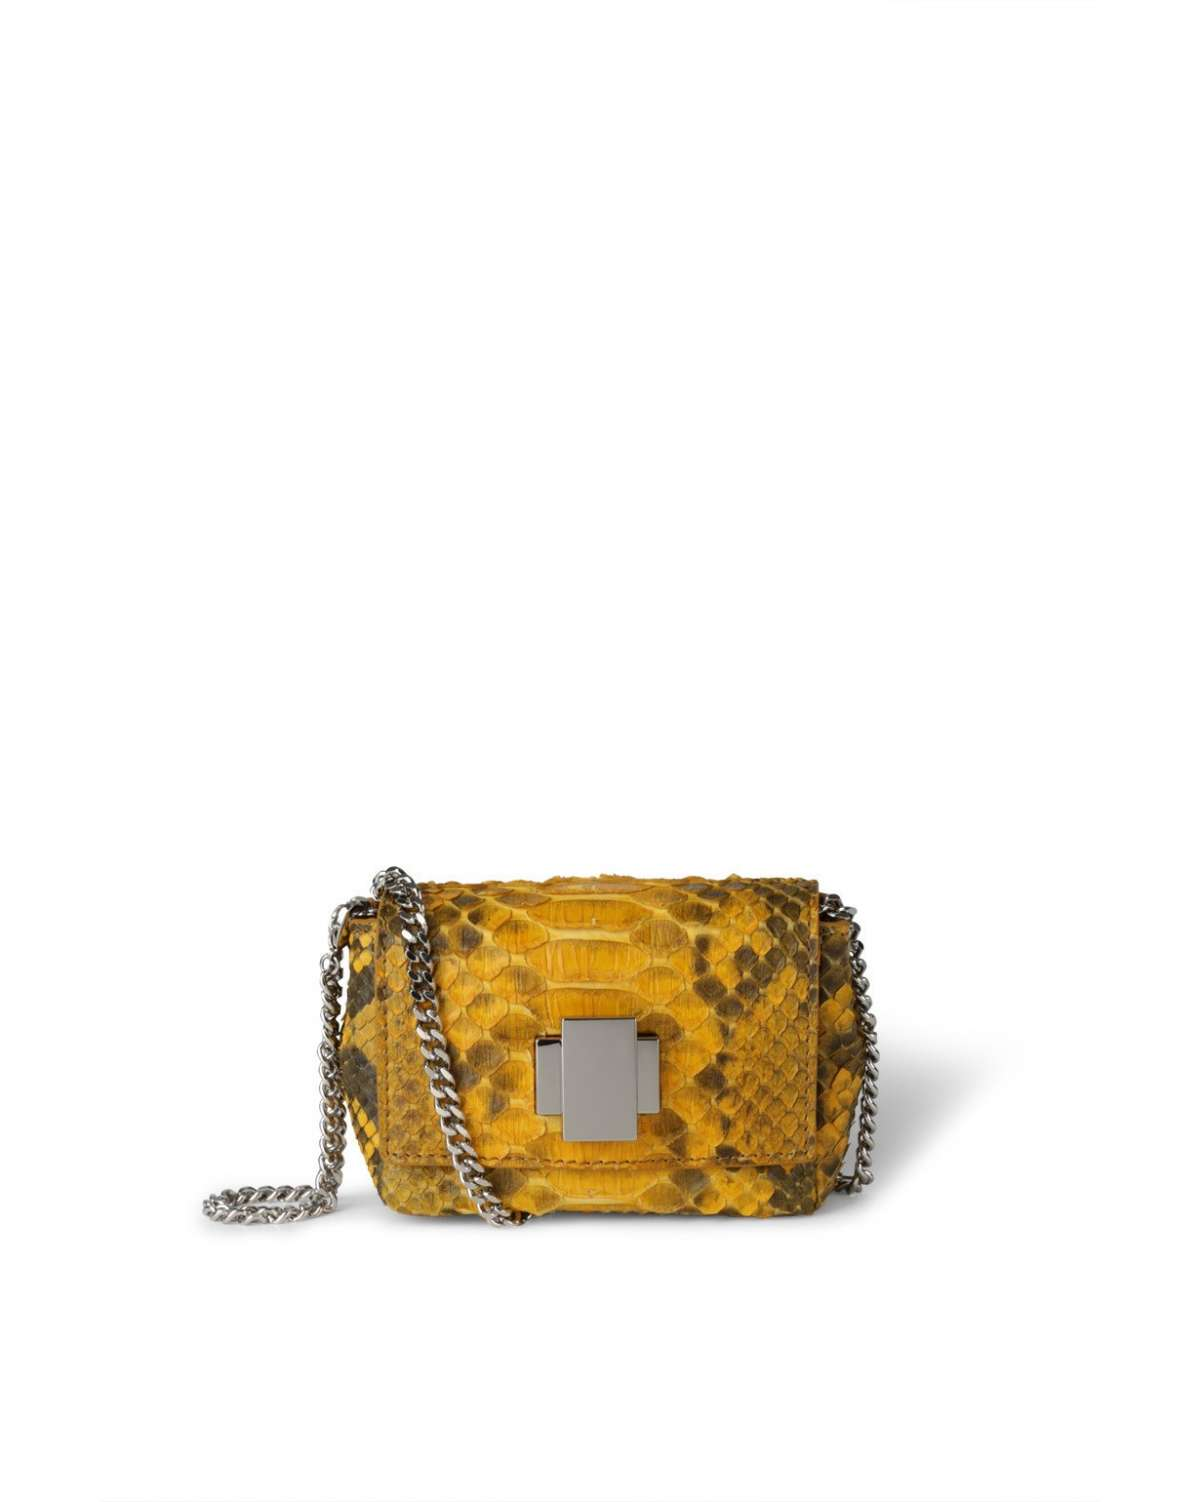 Mini bag in pitone giallo degradé